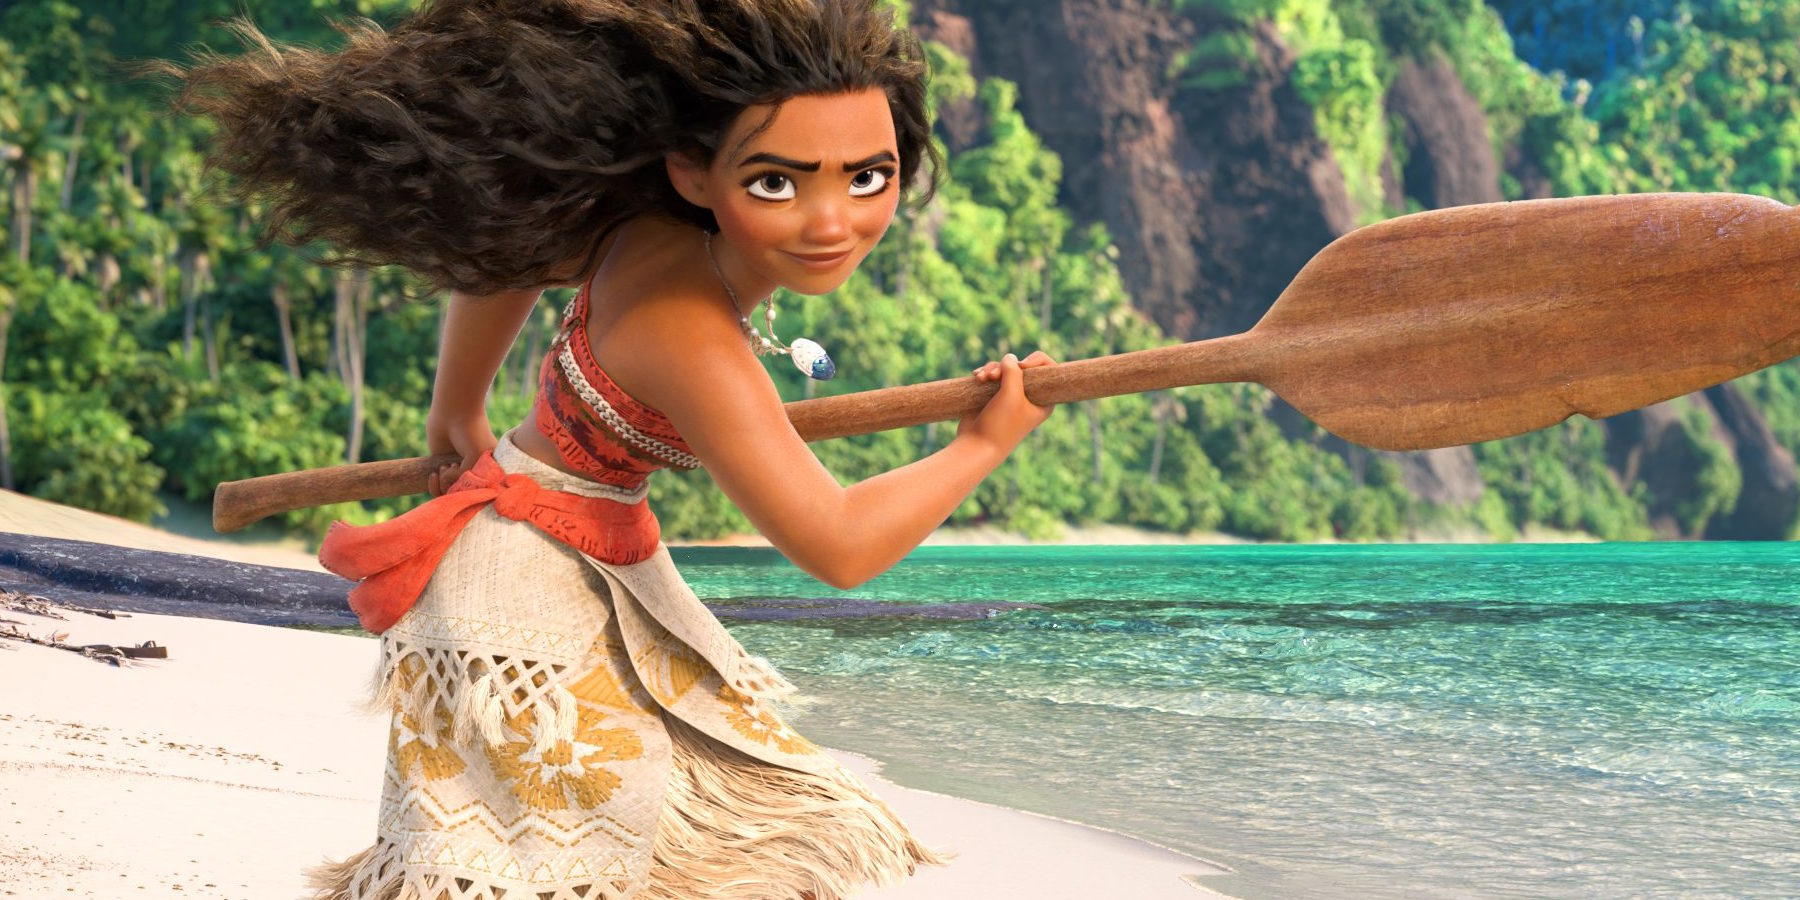 Moana S Real Fight Isn T Against A Demigod But The Patriarchy Itself Sheknows